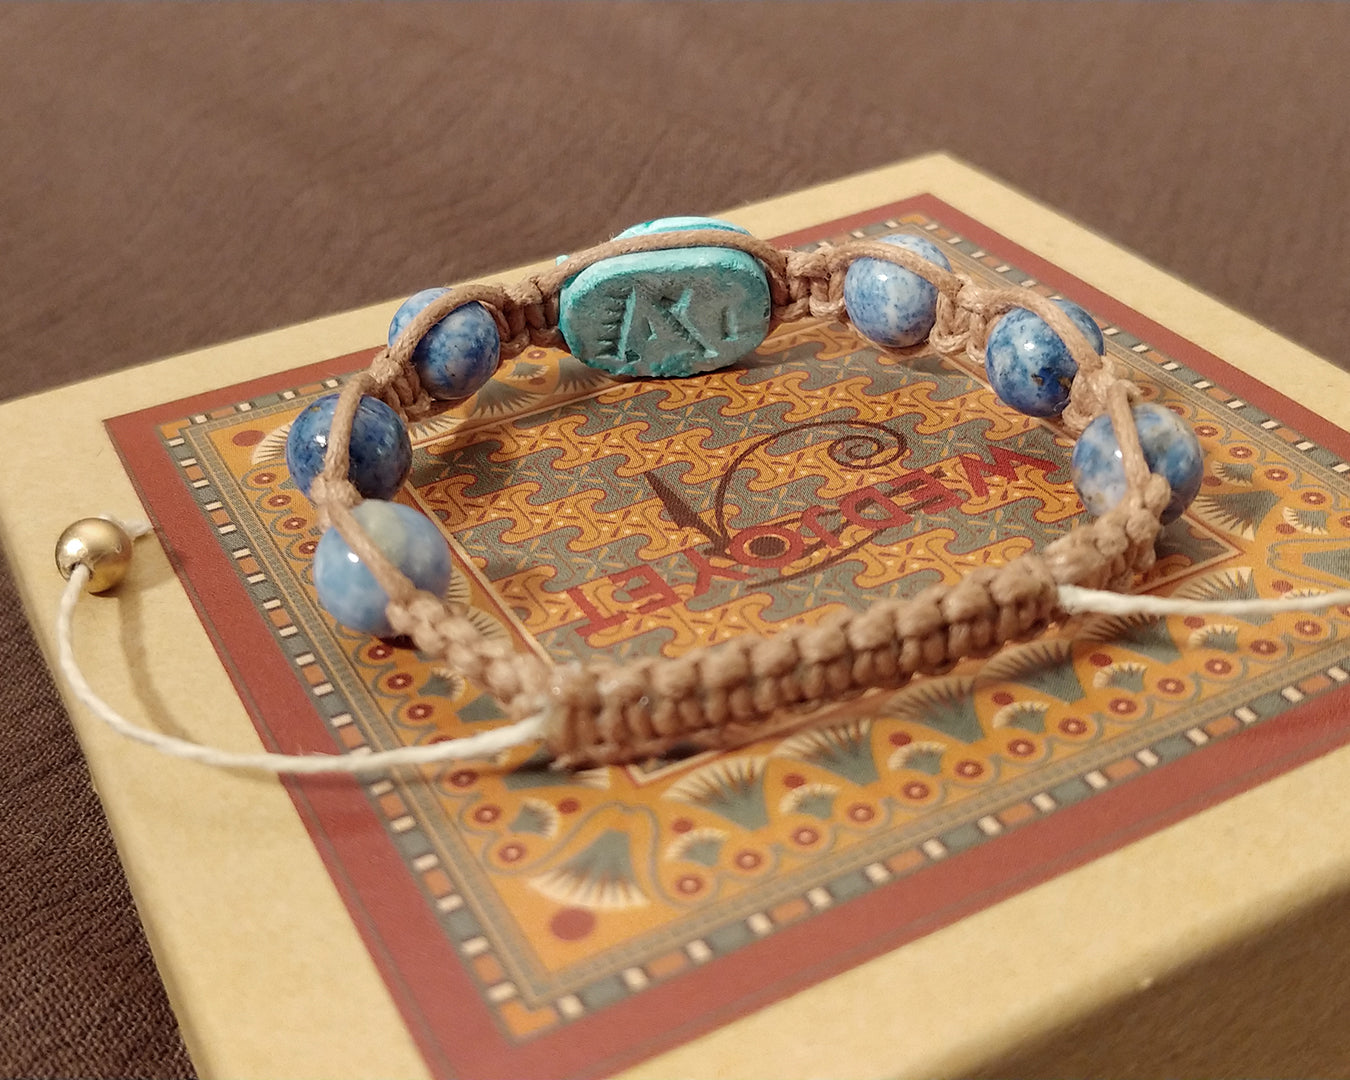 Men and Women's Ancient Egyptian Adjustable Marbled Lapis Lazuli Macrame Bracelet with Blue Porcelain Scarab with Hieroglyphs.